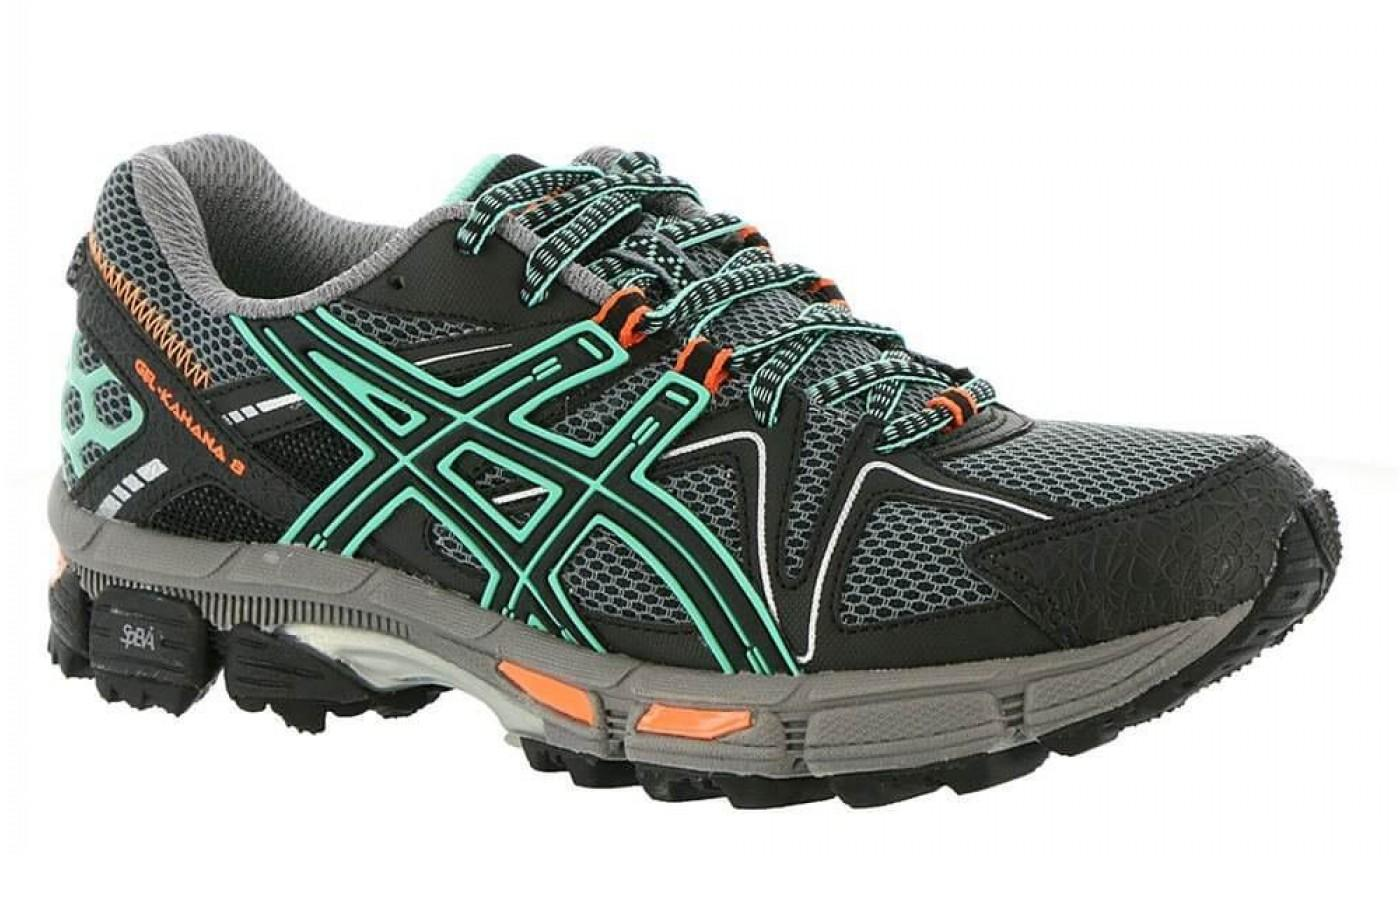 Available in a few popular color options, most are pleased with the look of the Gel Kahana 8